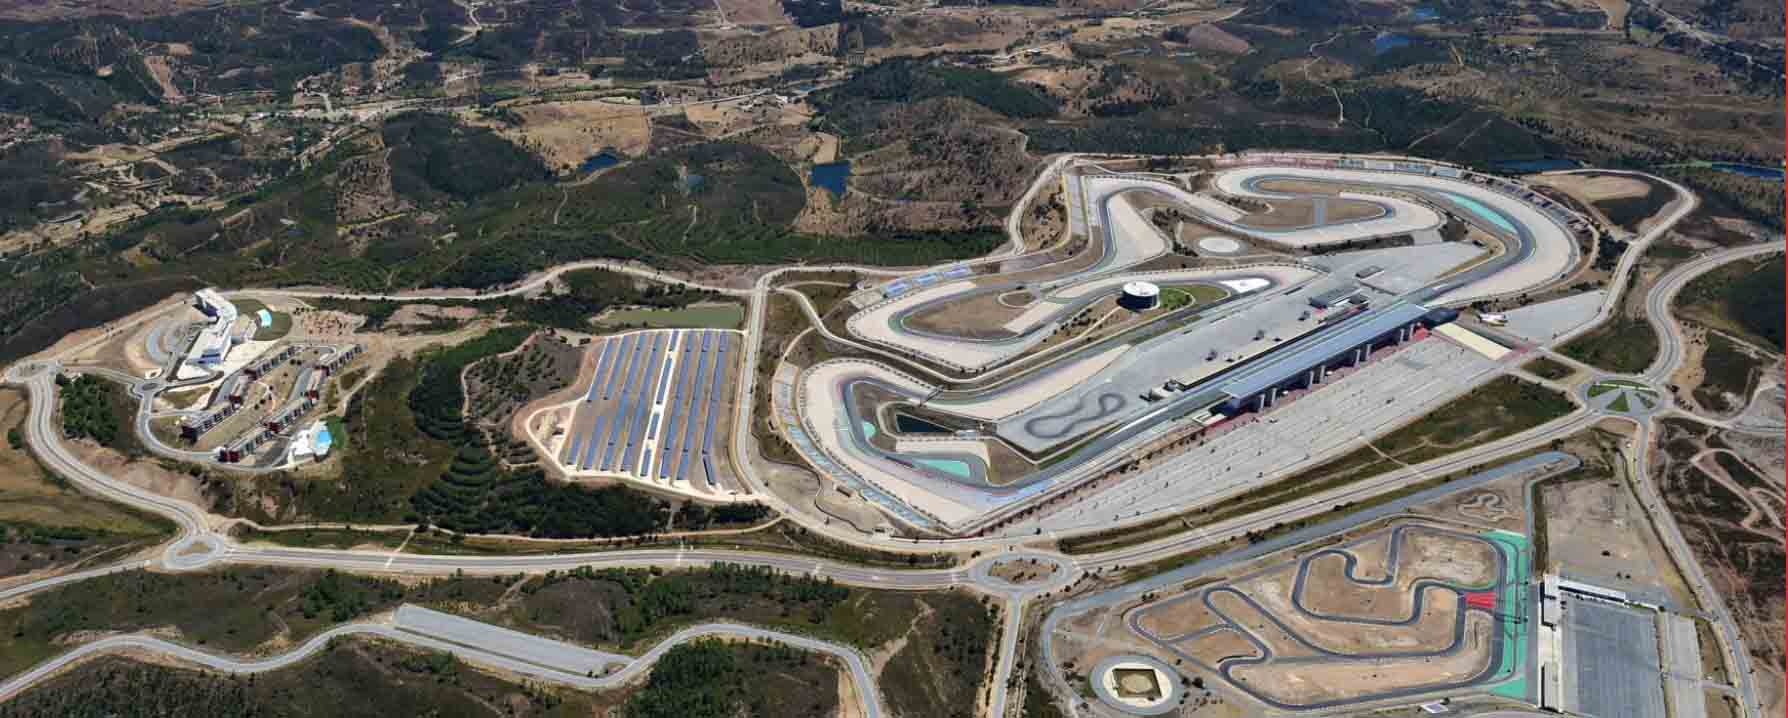 overview of Portimao track